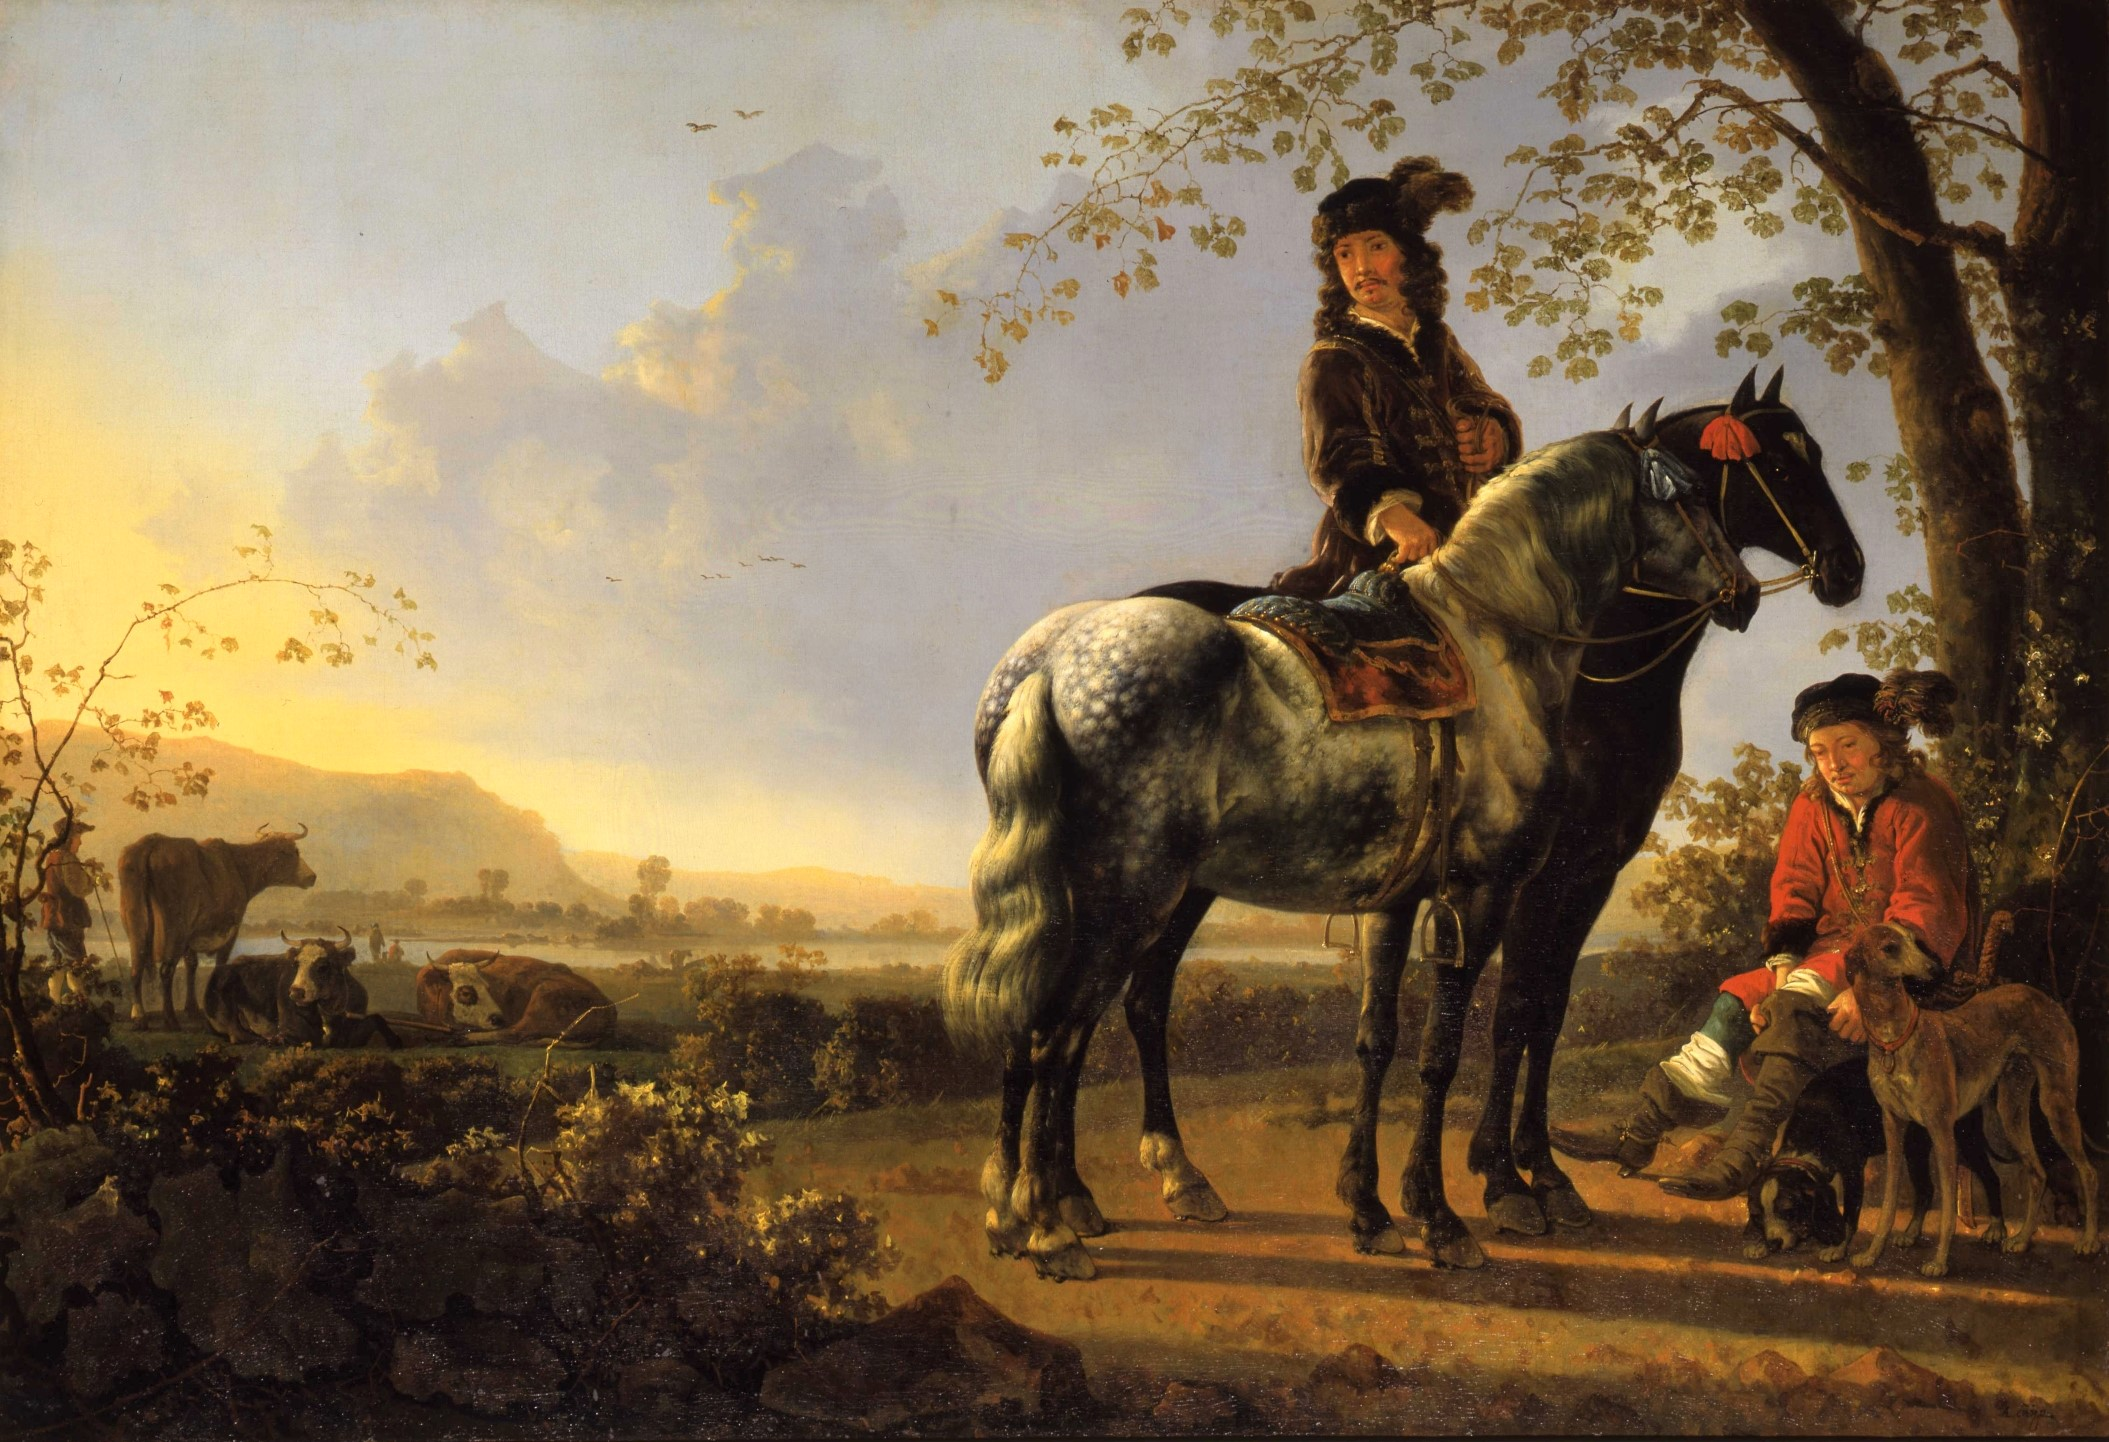 Aelbert-Cuyp-Horsemen-Resing-in-a-Landscape-Collection-of-the-Dordrecht-Museum-purchased-with-support-of-Vereniging-Rembrandt-1978.